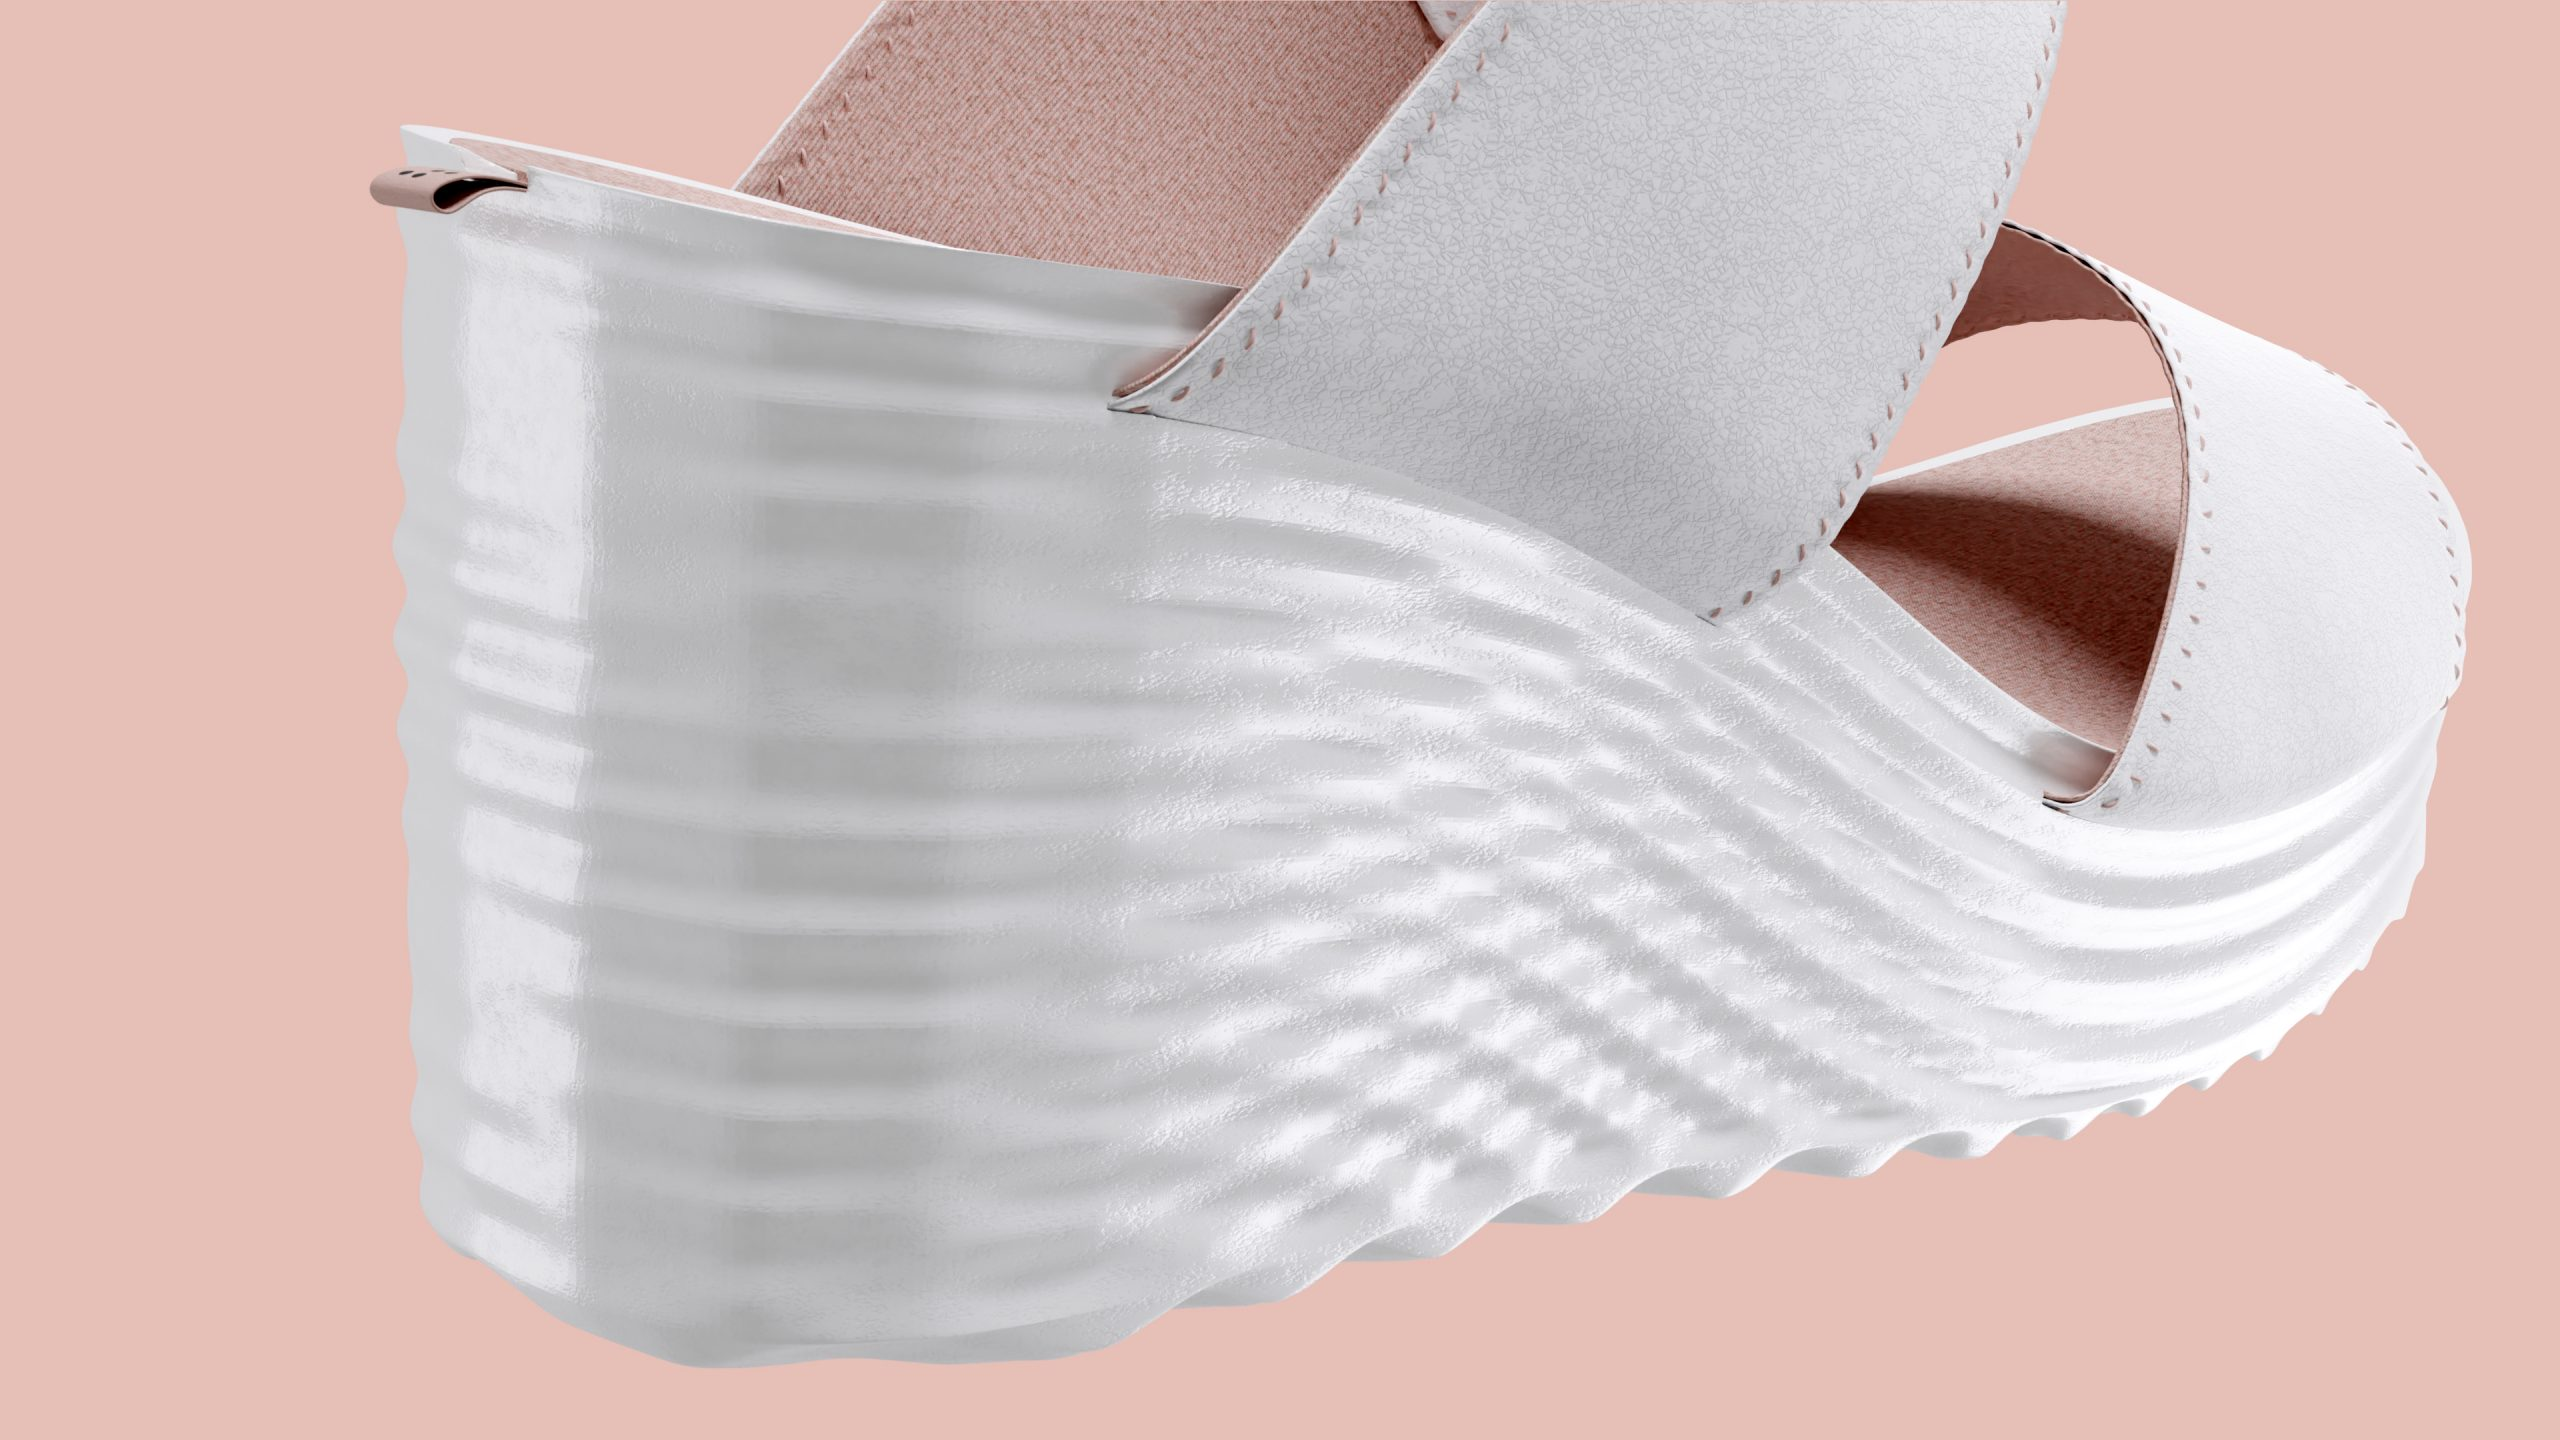 dreiformstudio white concept wedge sandals on peach background, perspective view from back